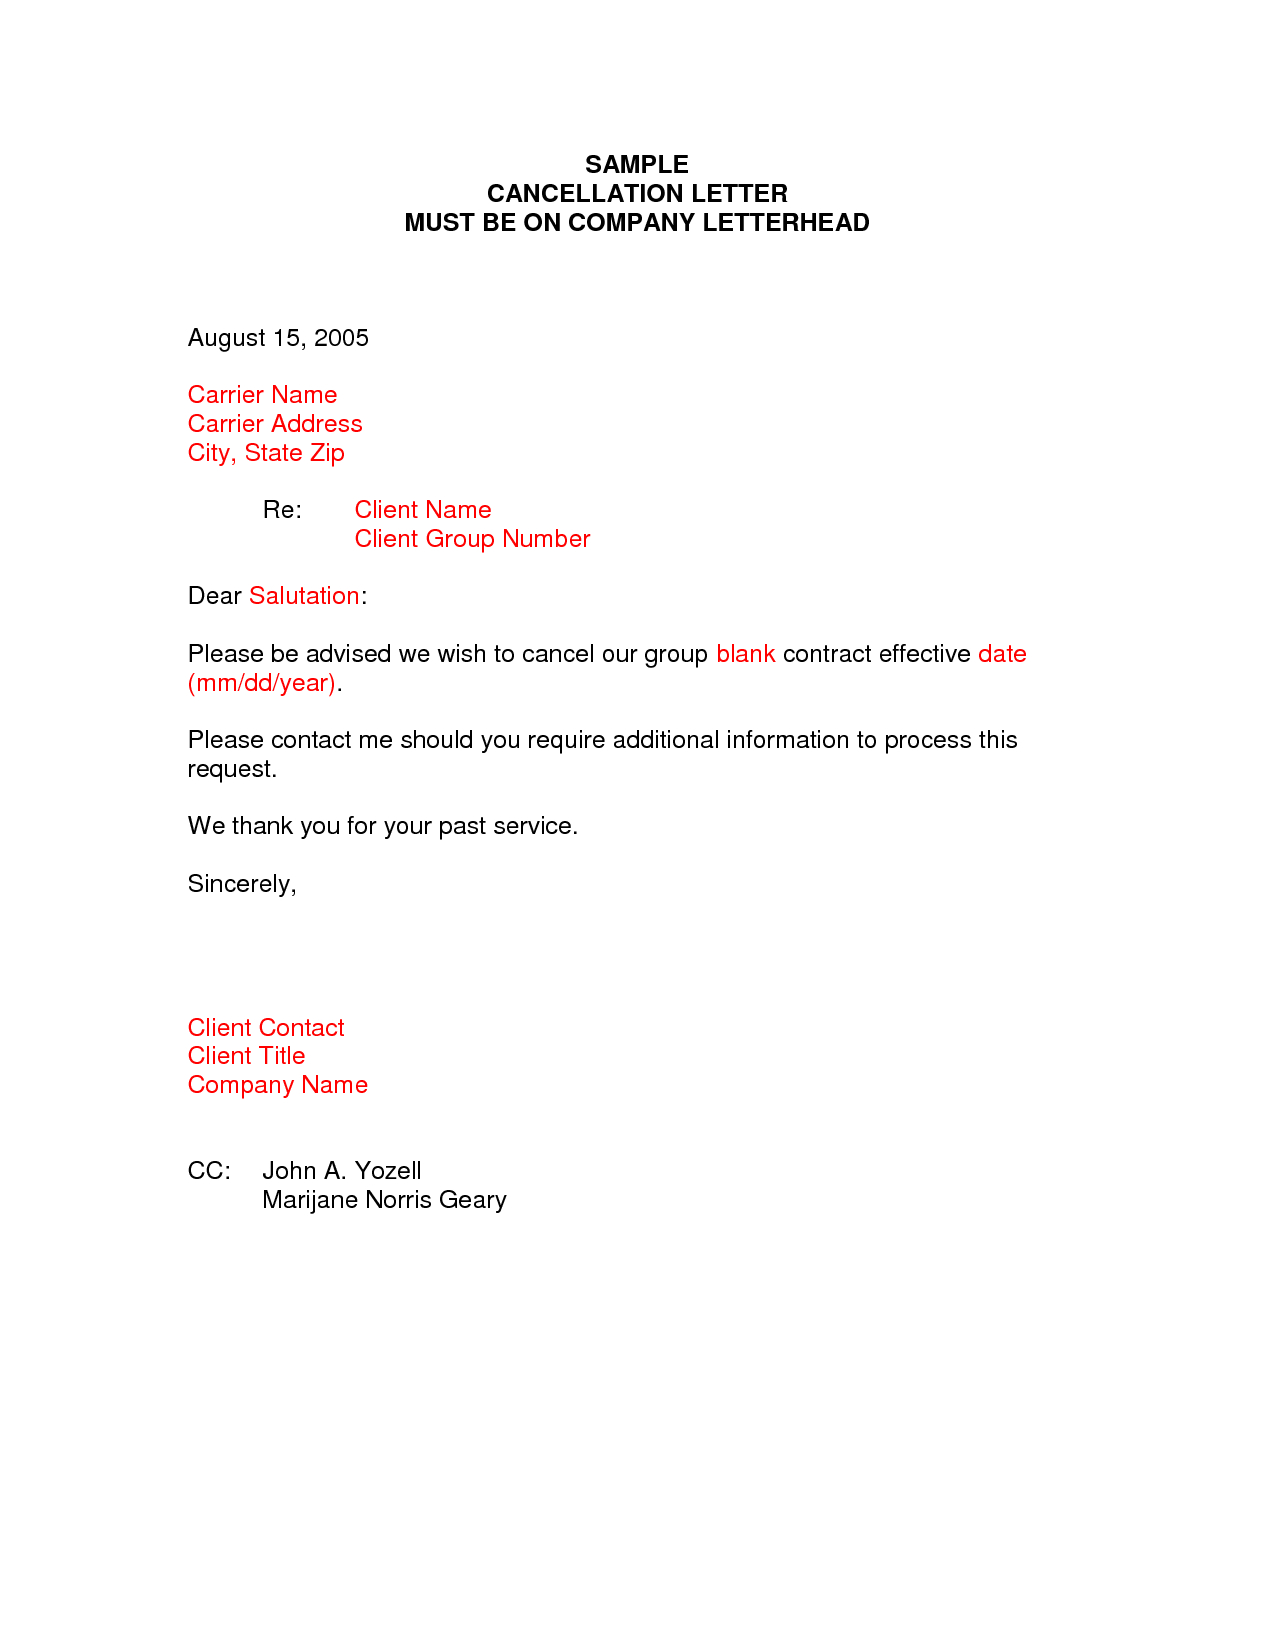 Sample Employee Termination Letter Template - Sample Termination Letter format Business Case Examples Free Cover